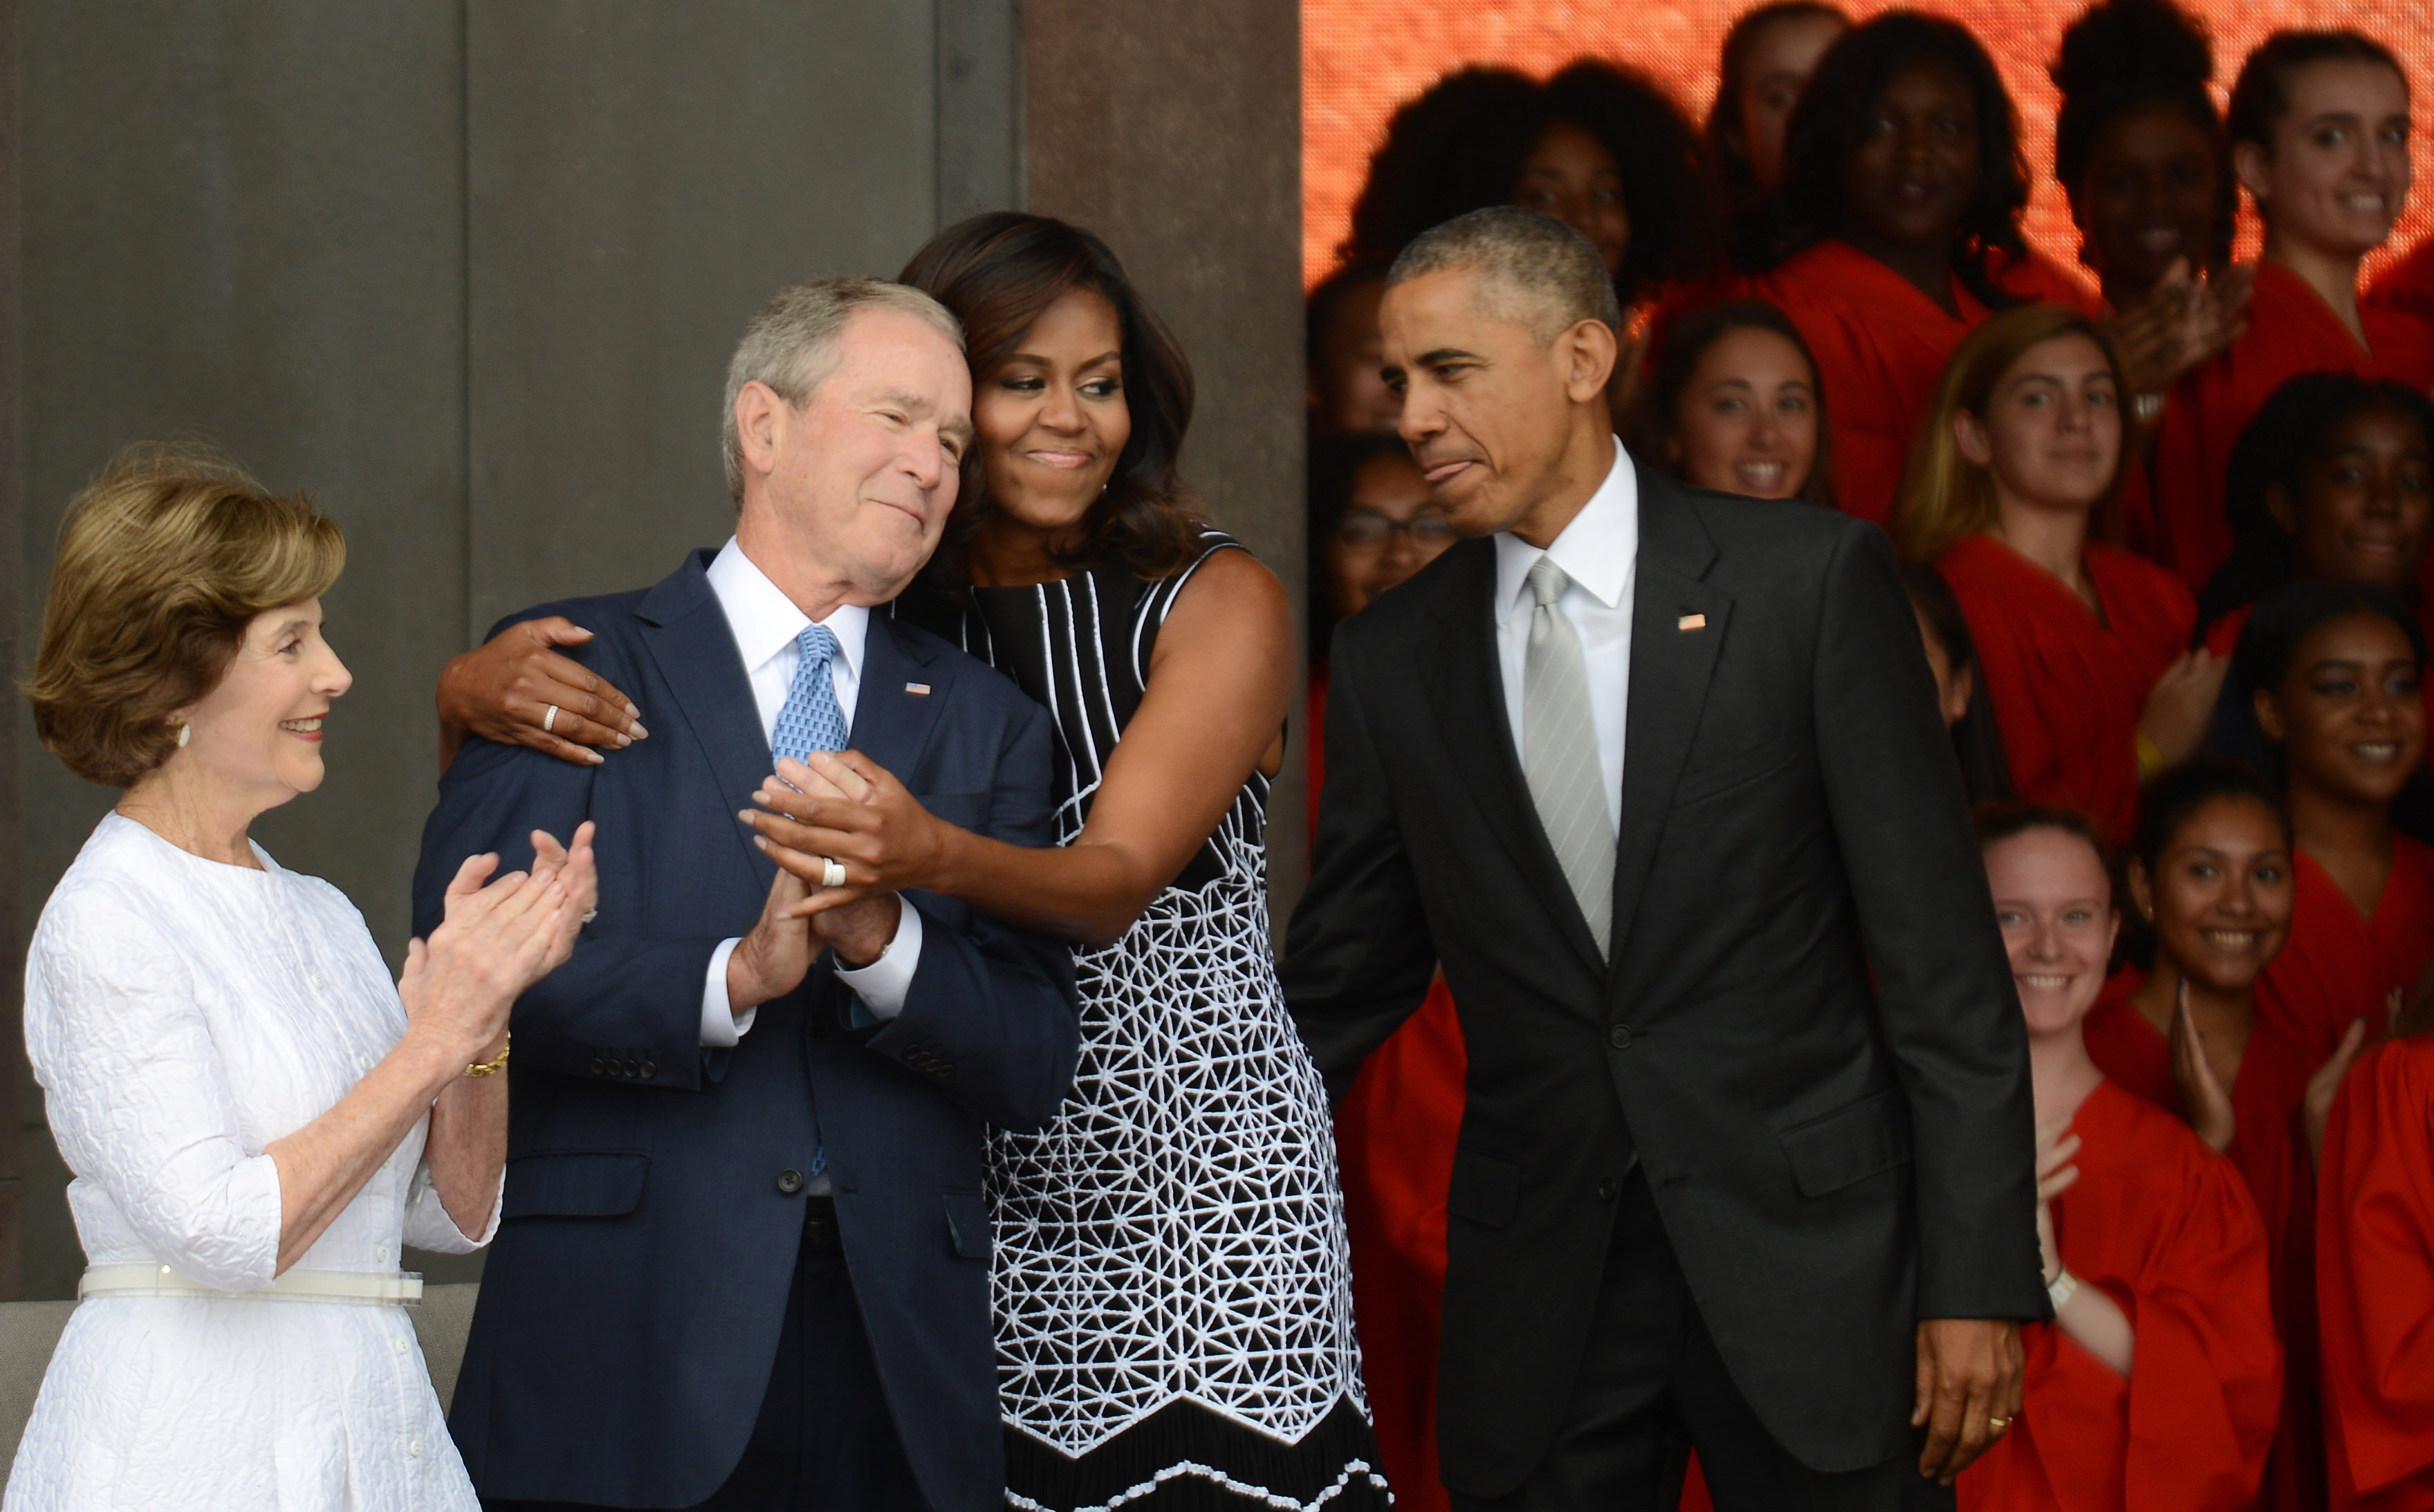 Barack Obama and George W. Bush with wives Michelle Obama and Laura Bush at the dedication of the National Museum of African American History and Culture | Photo: Getty Images